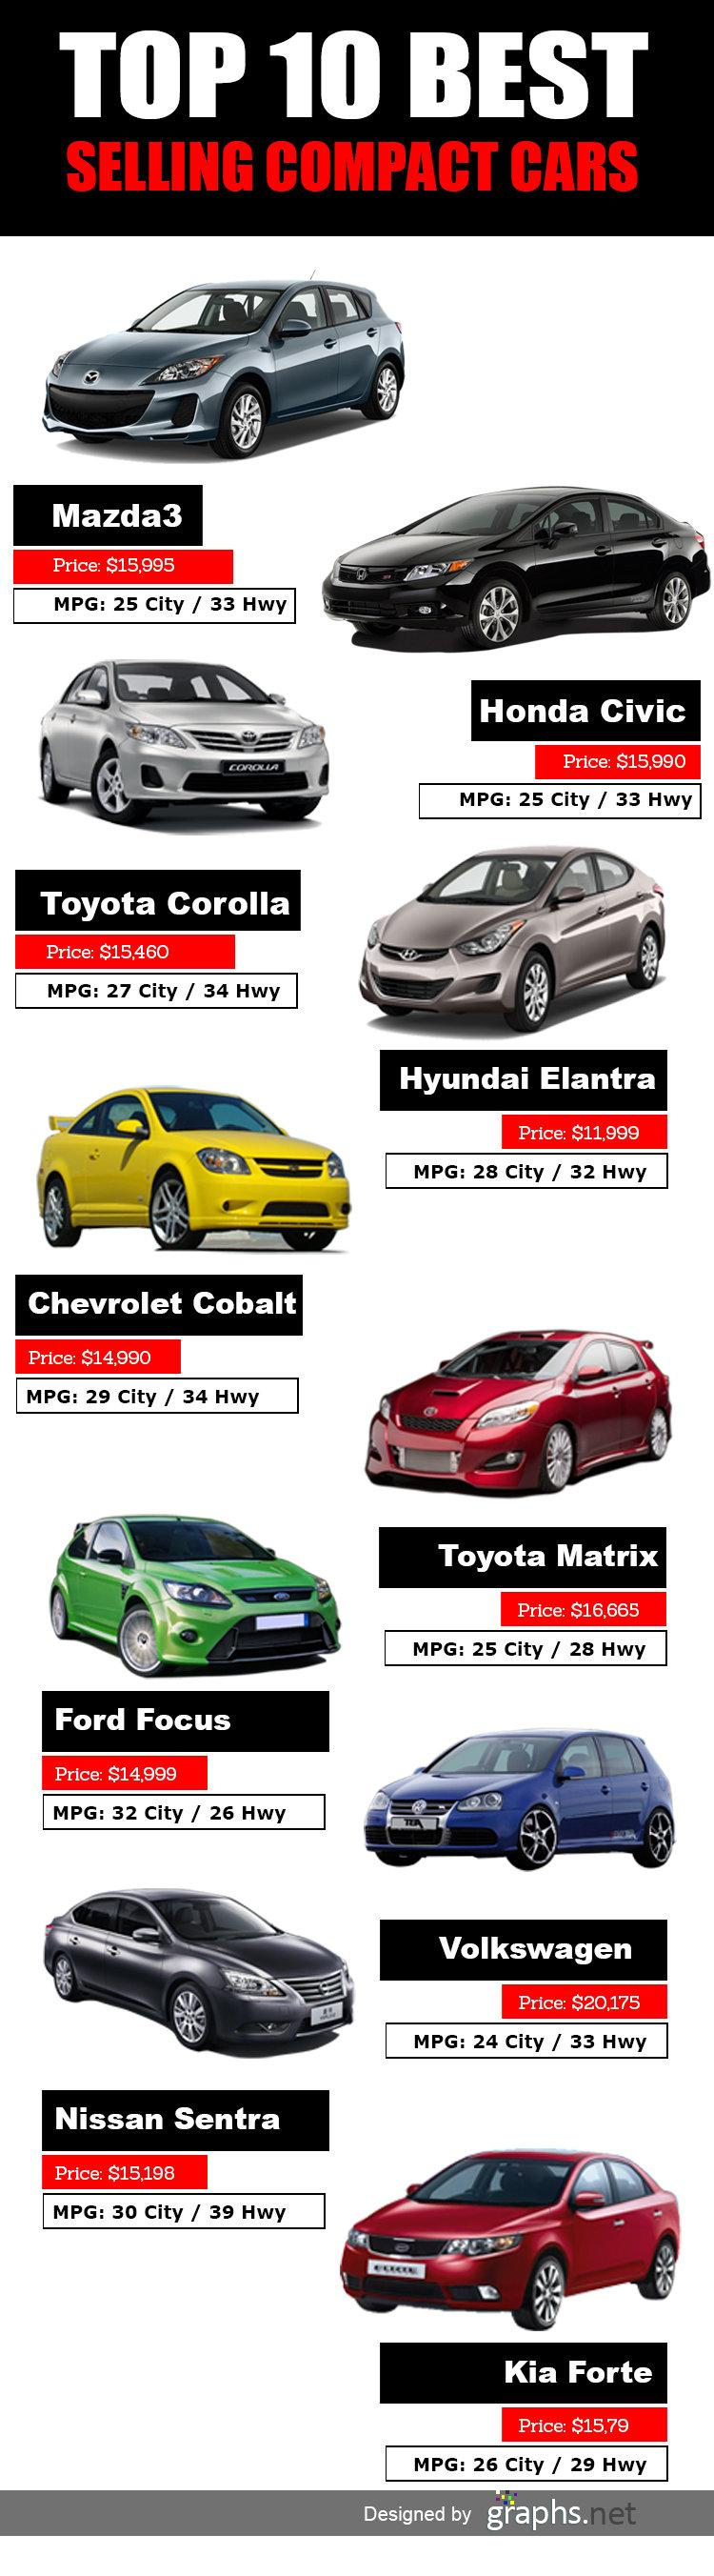 TOP 10 BEST COMPACT #CARS - #infographic